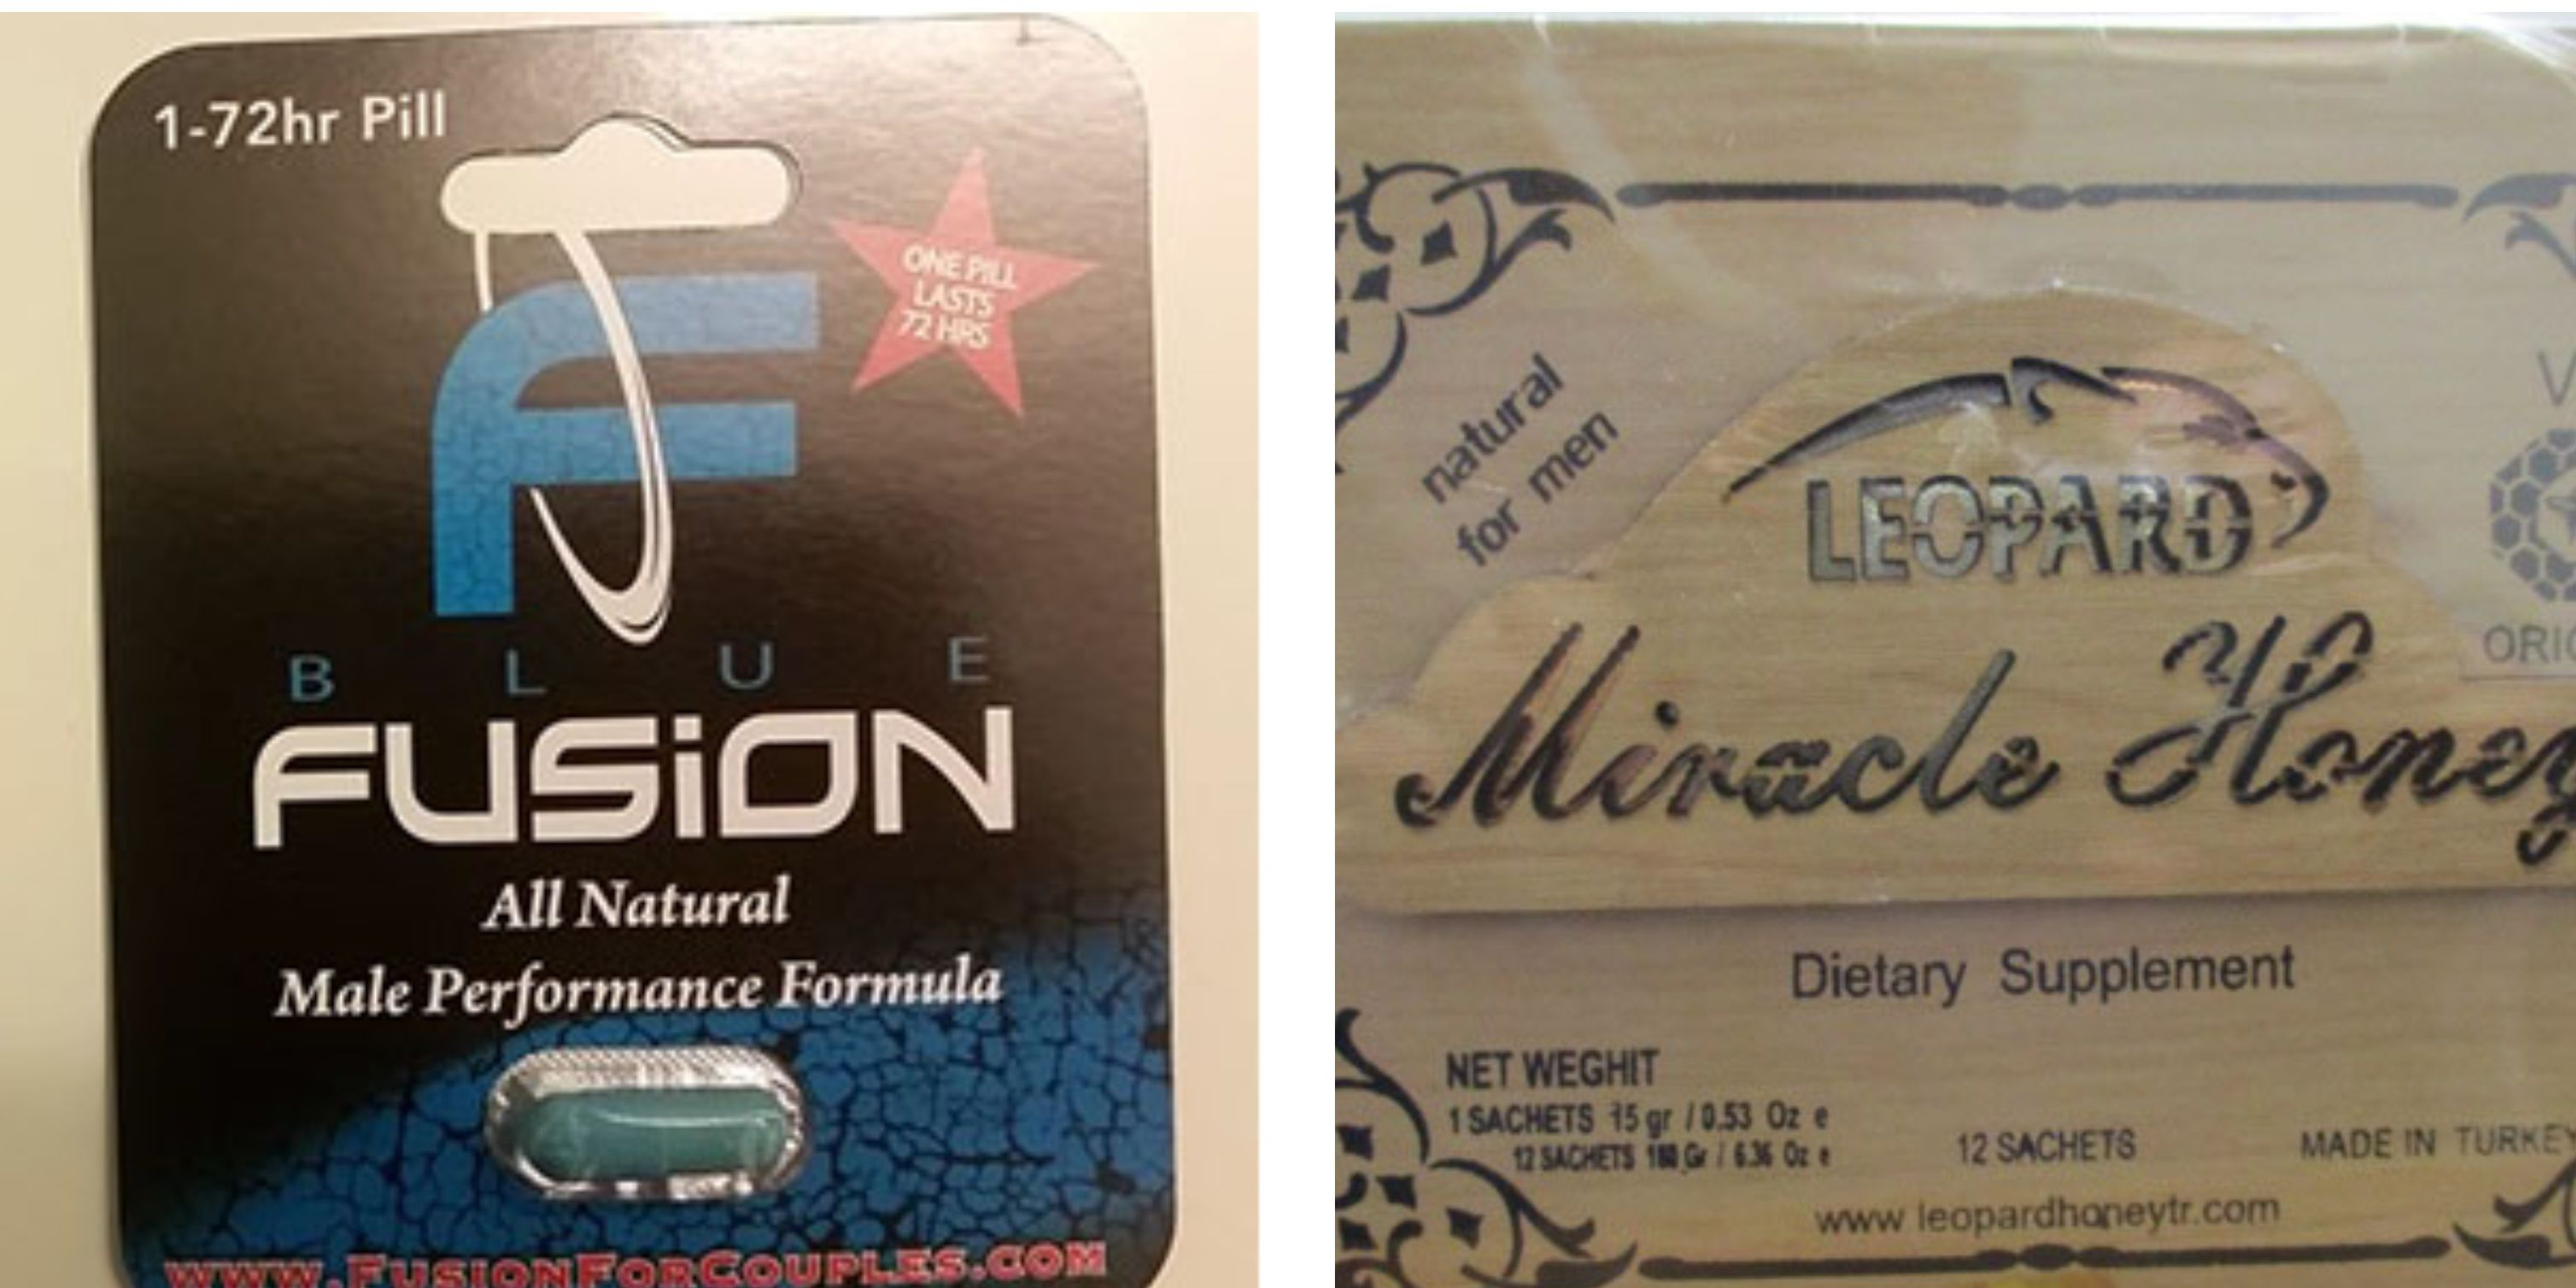 Two male enhancement supplements recalled due to presence of sildenafil